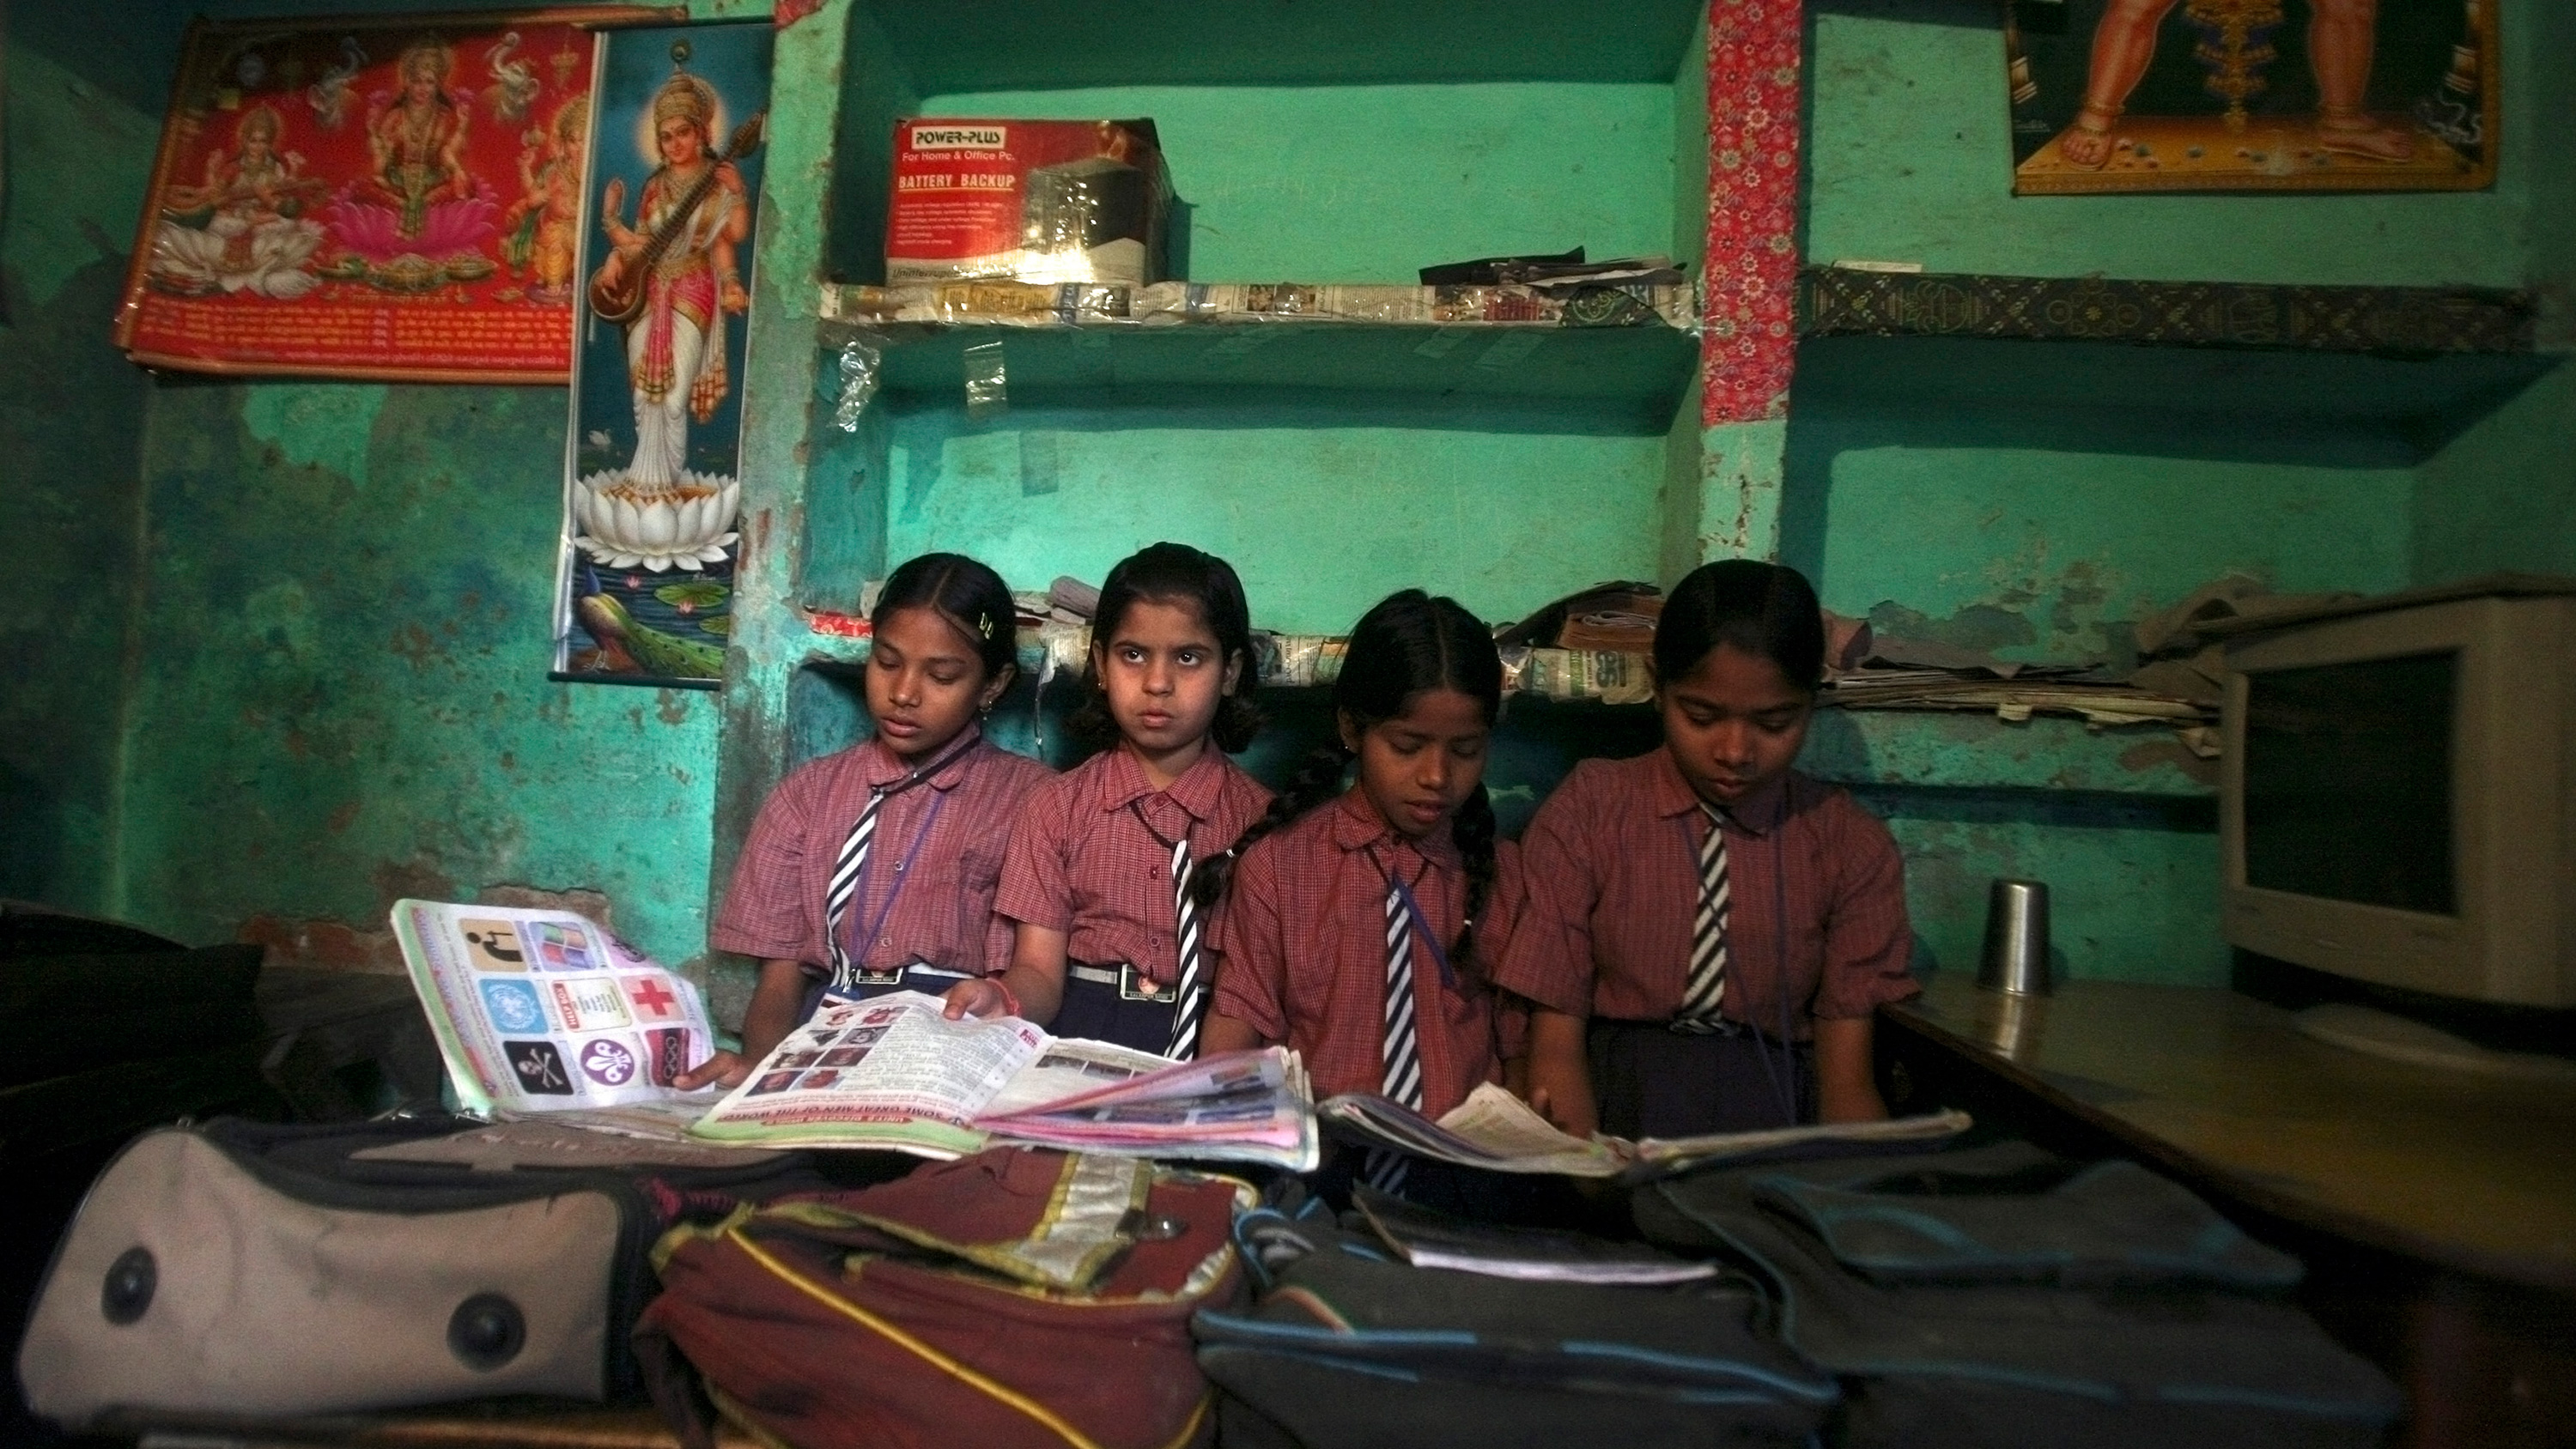 Image show four girls sitting close to each other with their heads buried in books, except one who looks up and off camera. The walls of the school are painted green.